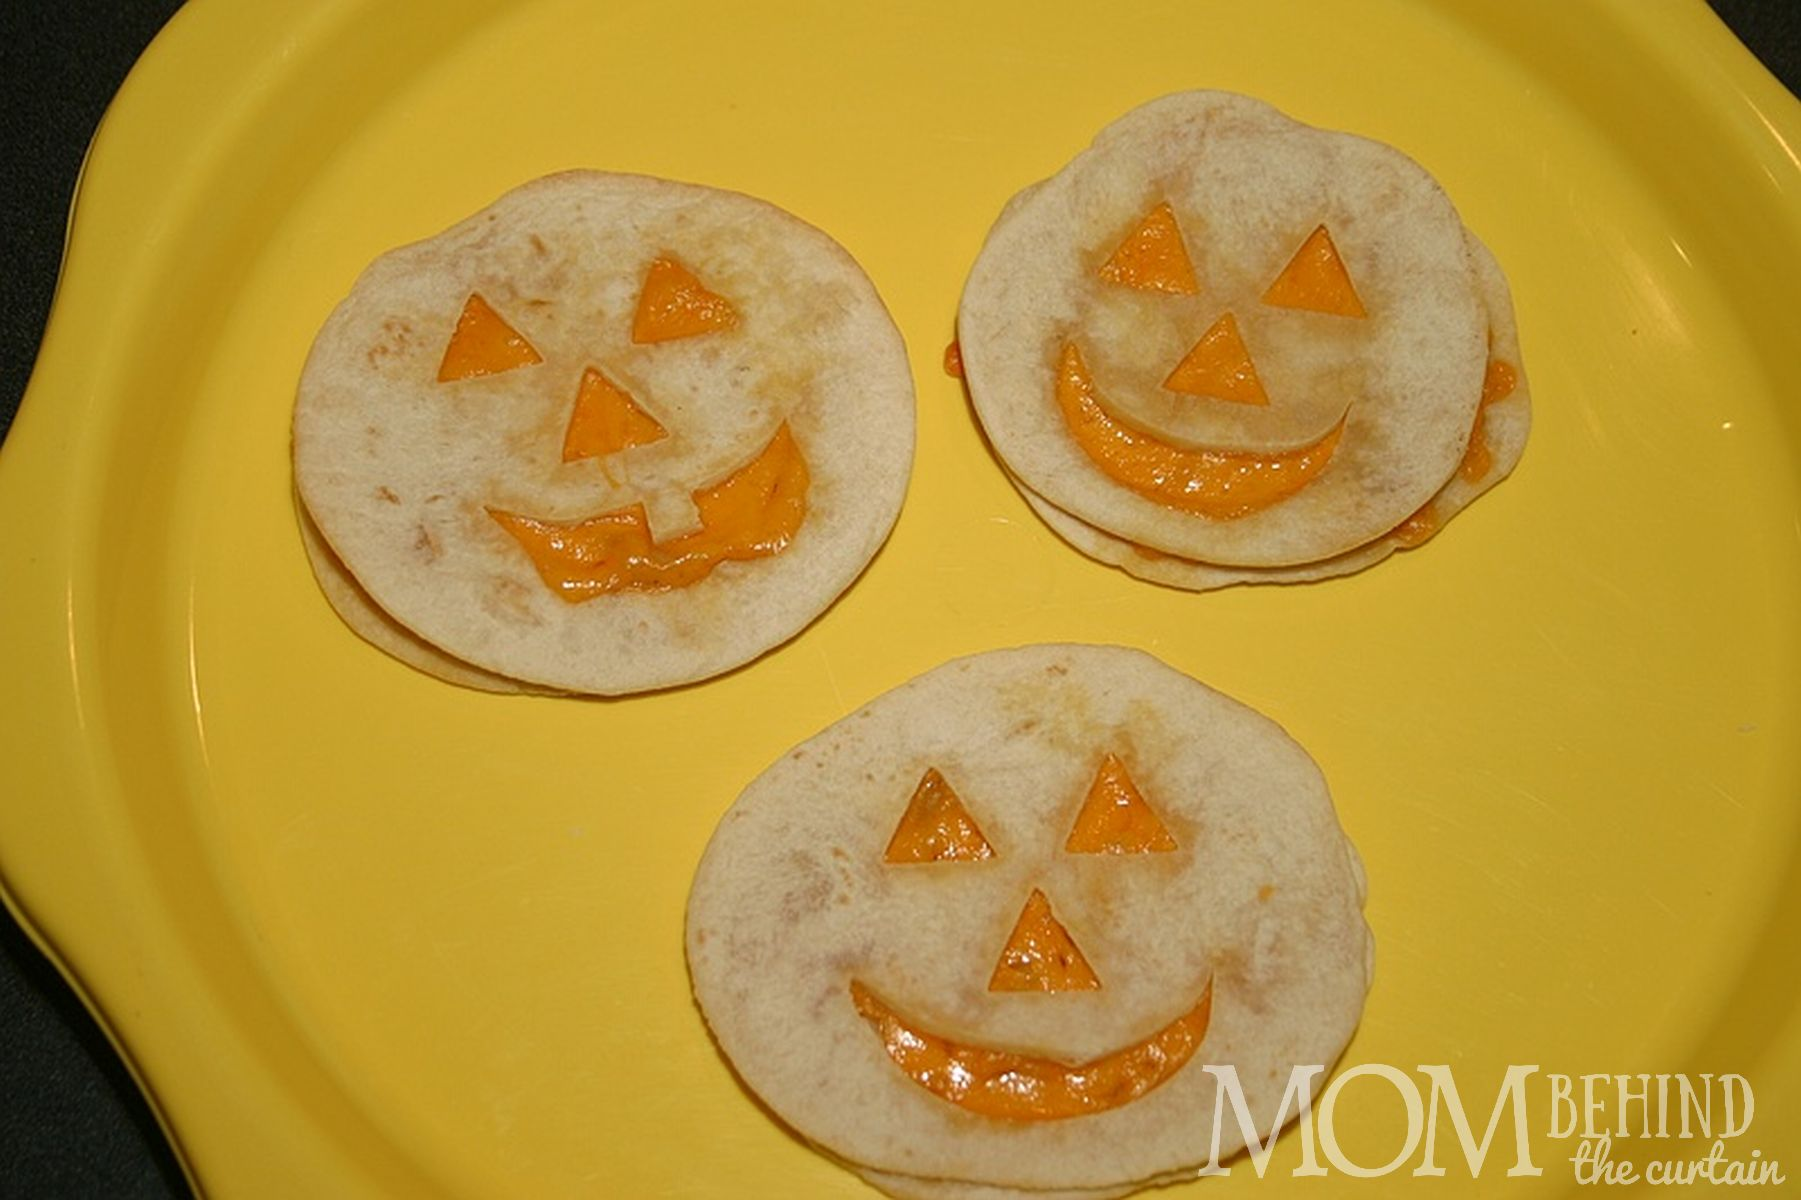 pumpkin face quessadillas - Halloween Party Food - ideas for kids party that are easy. And sometimes healthy! Okay, is anything really healthy besides kale? These are at least healthier than the candy that's - let's face it - going to be consumed in massive quantities!